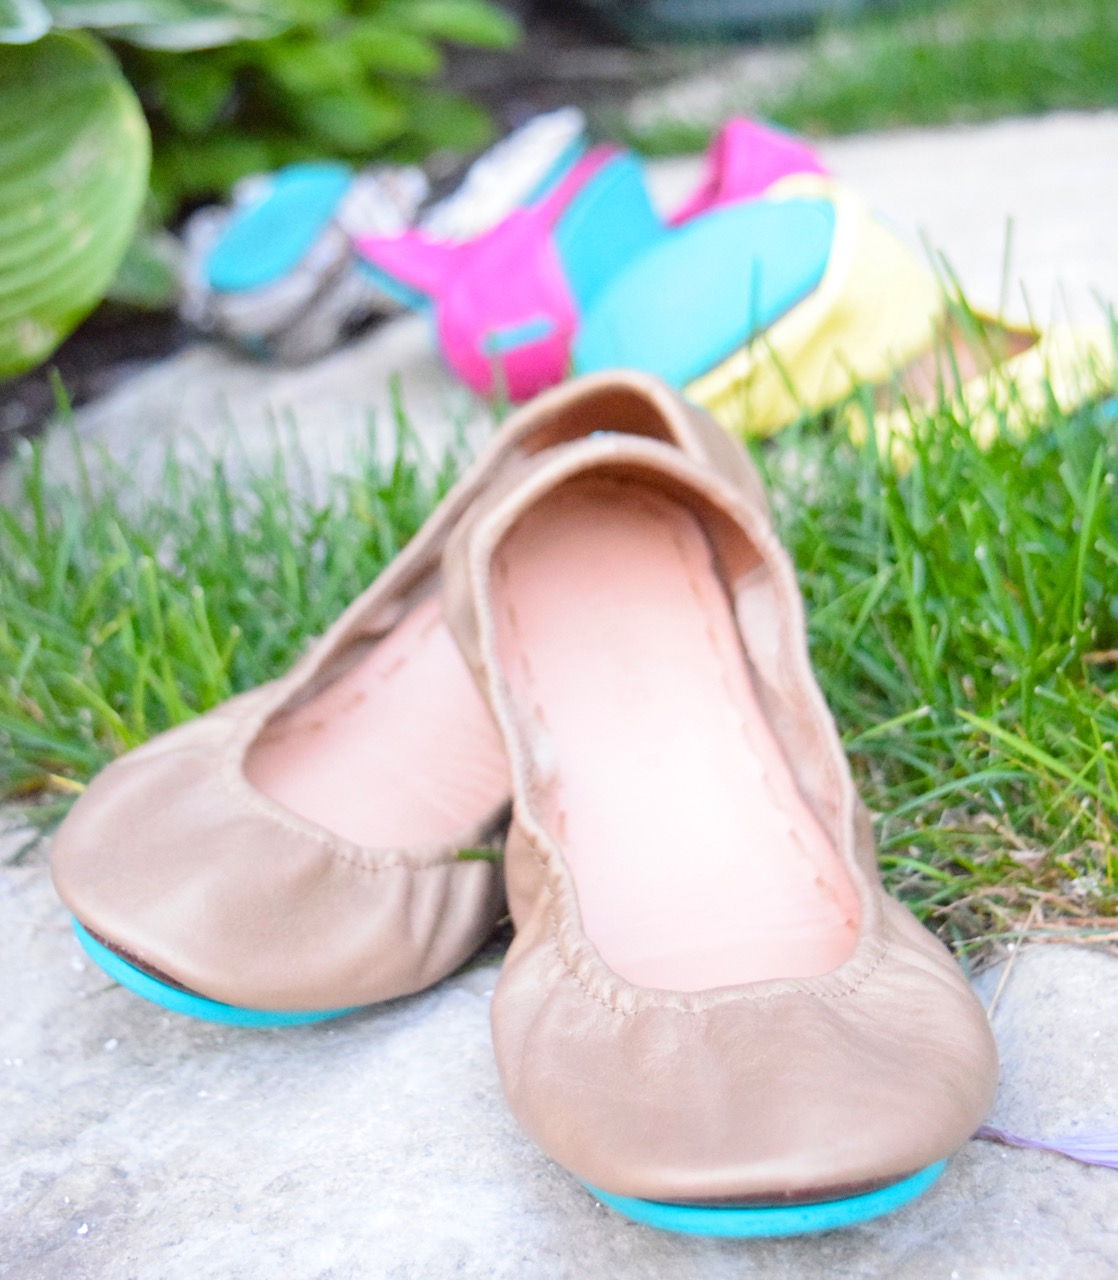 443cbea7f8d905 Tieks  a two-year update on my fave flats